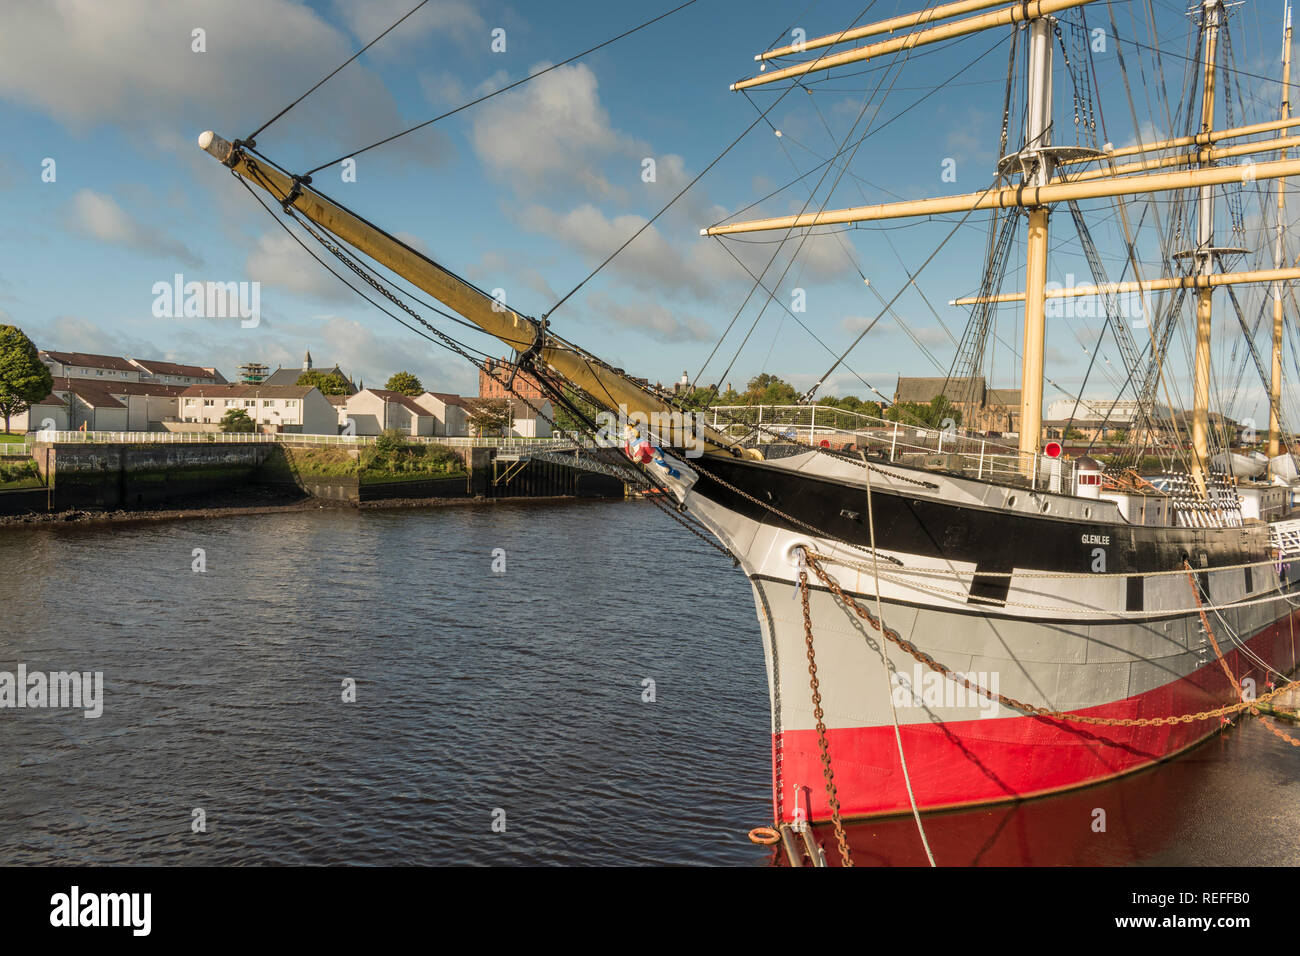 The Tall Ship Glenlee at Glasgow's Riverside Museum - Stock Image